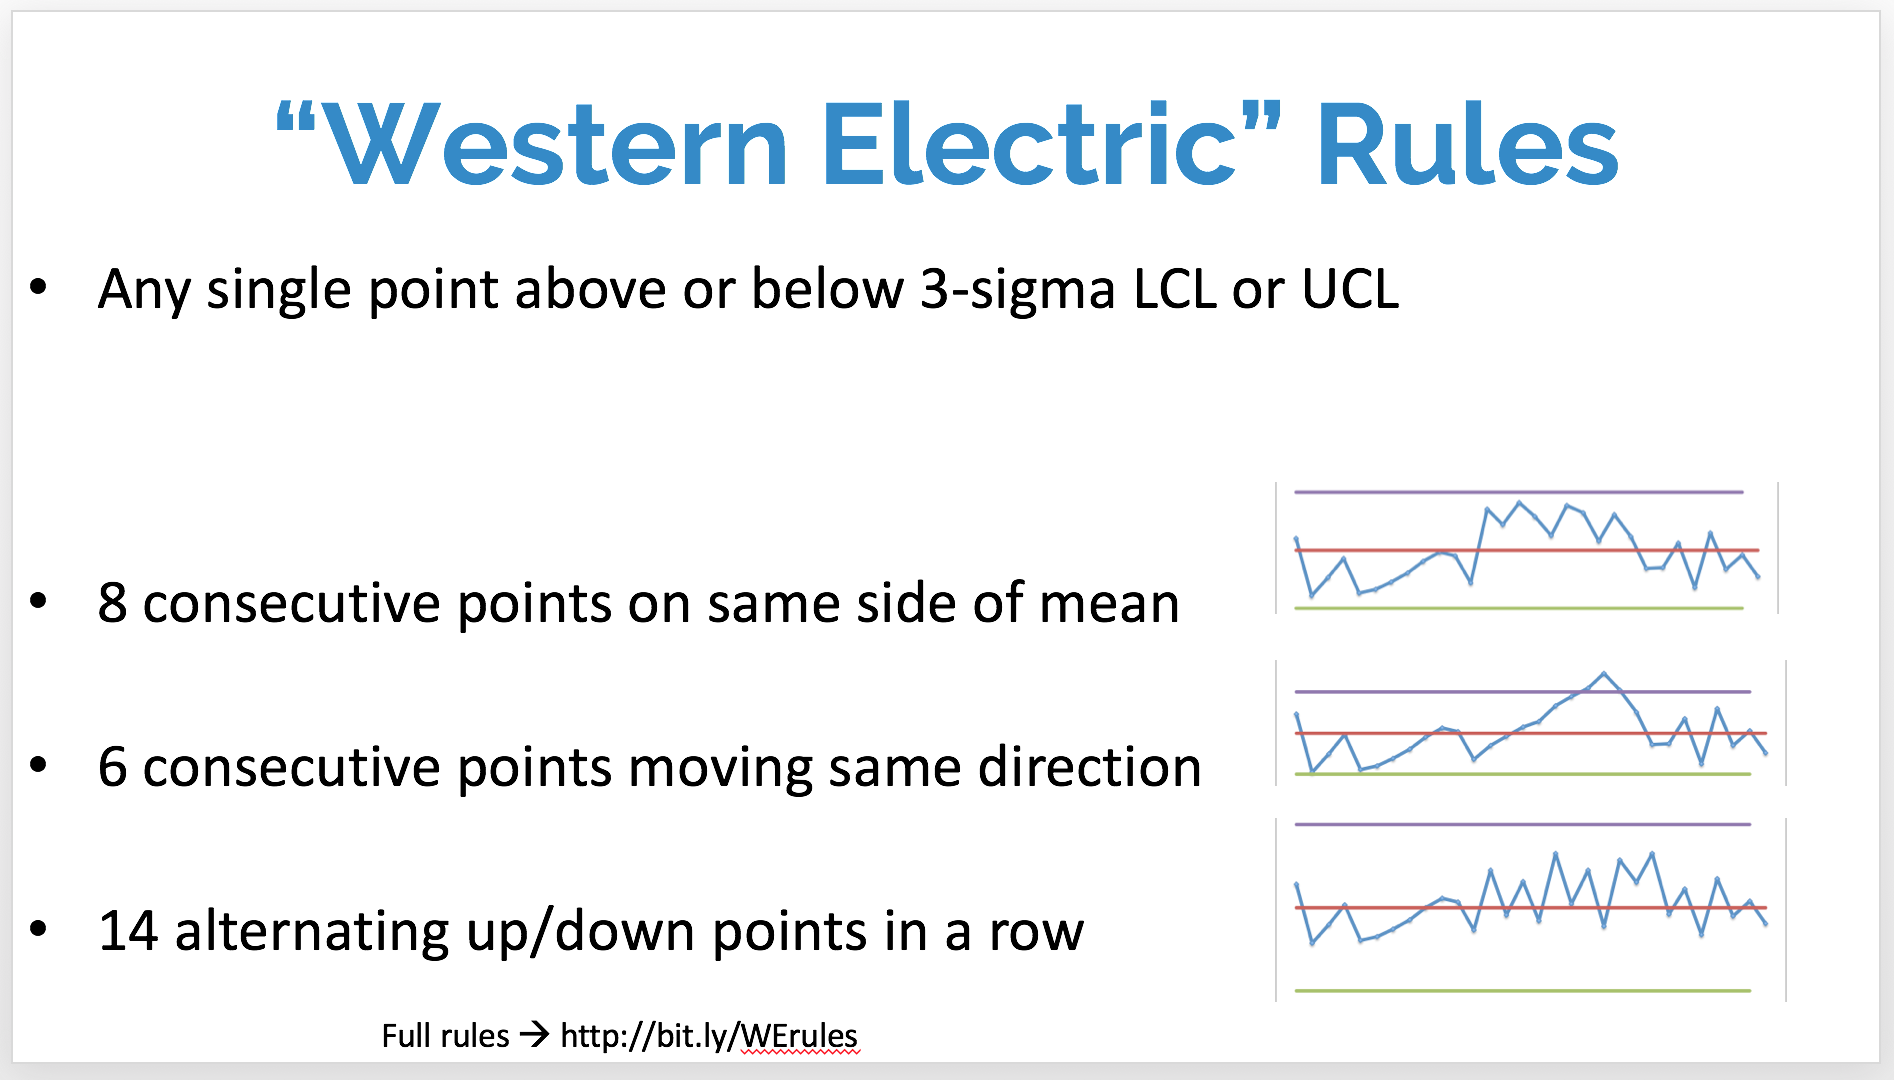 western electric rules.png